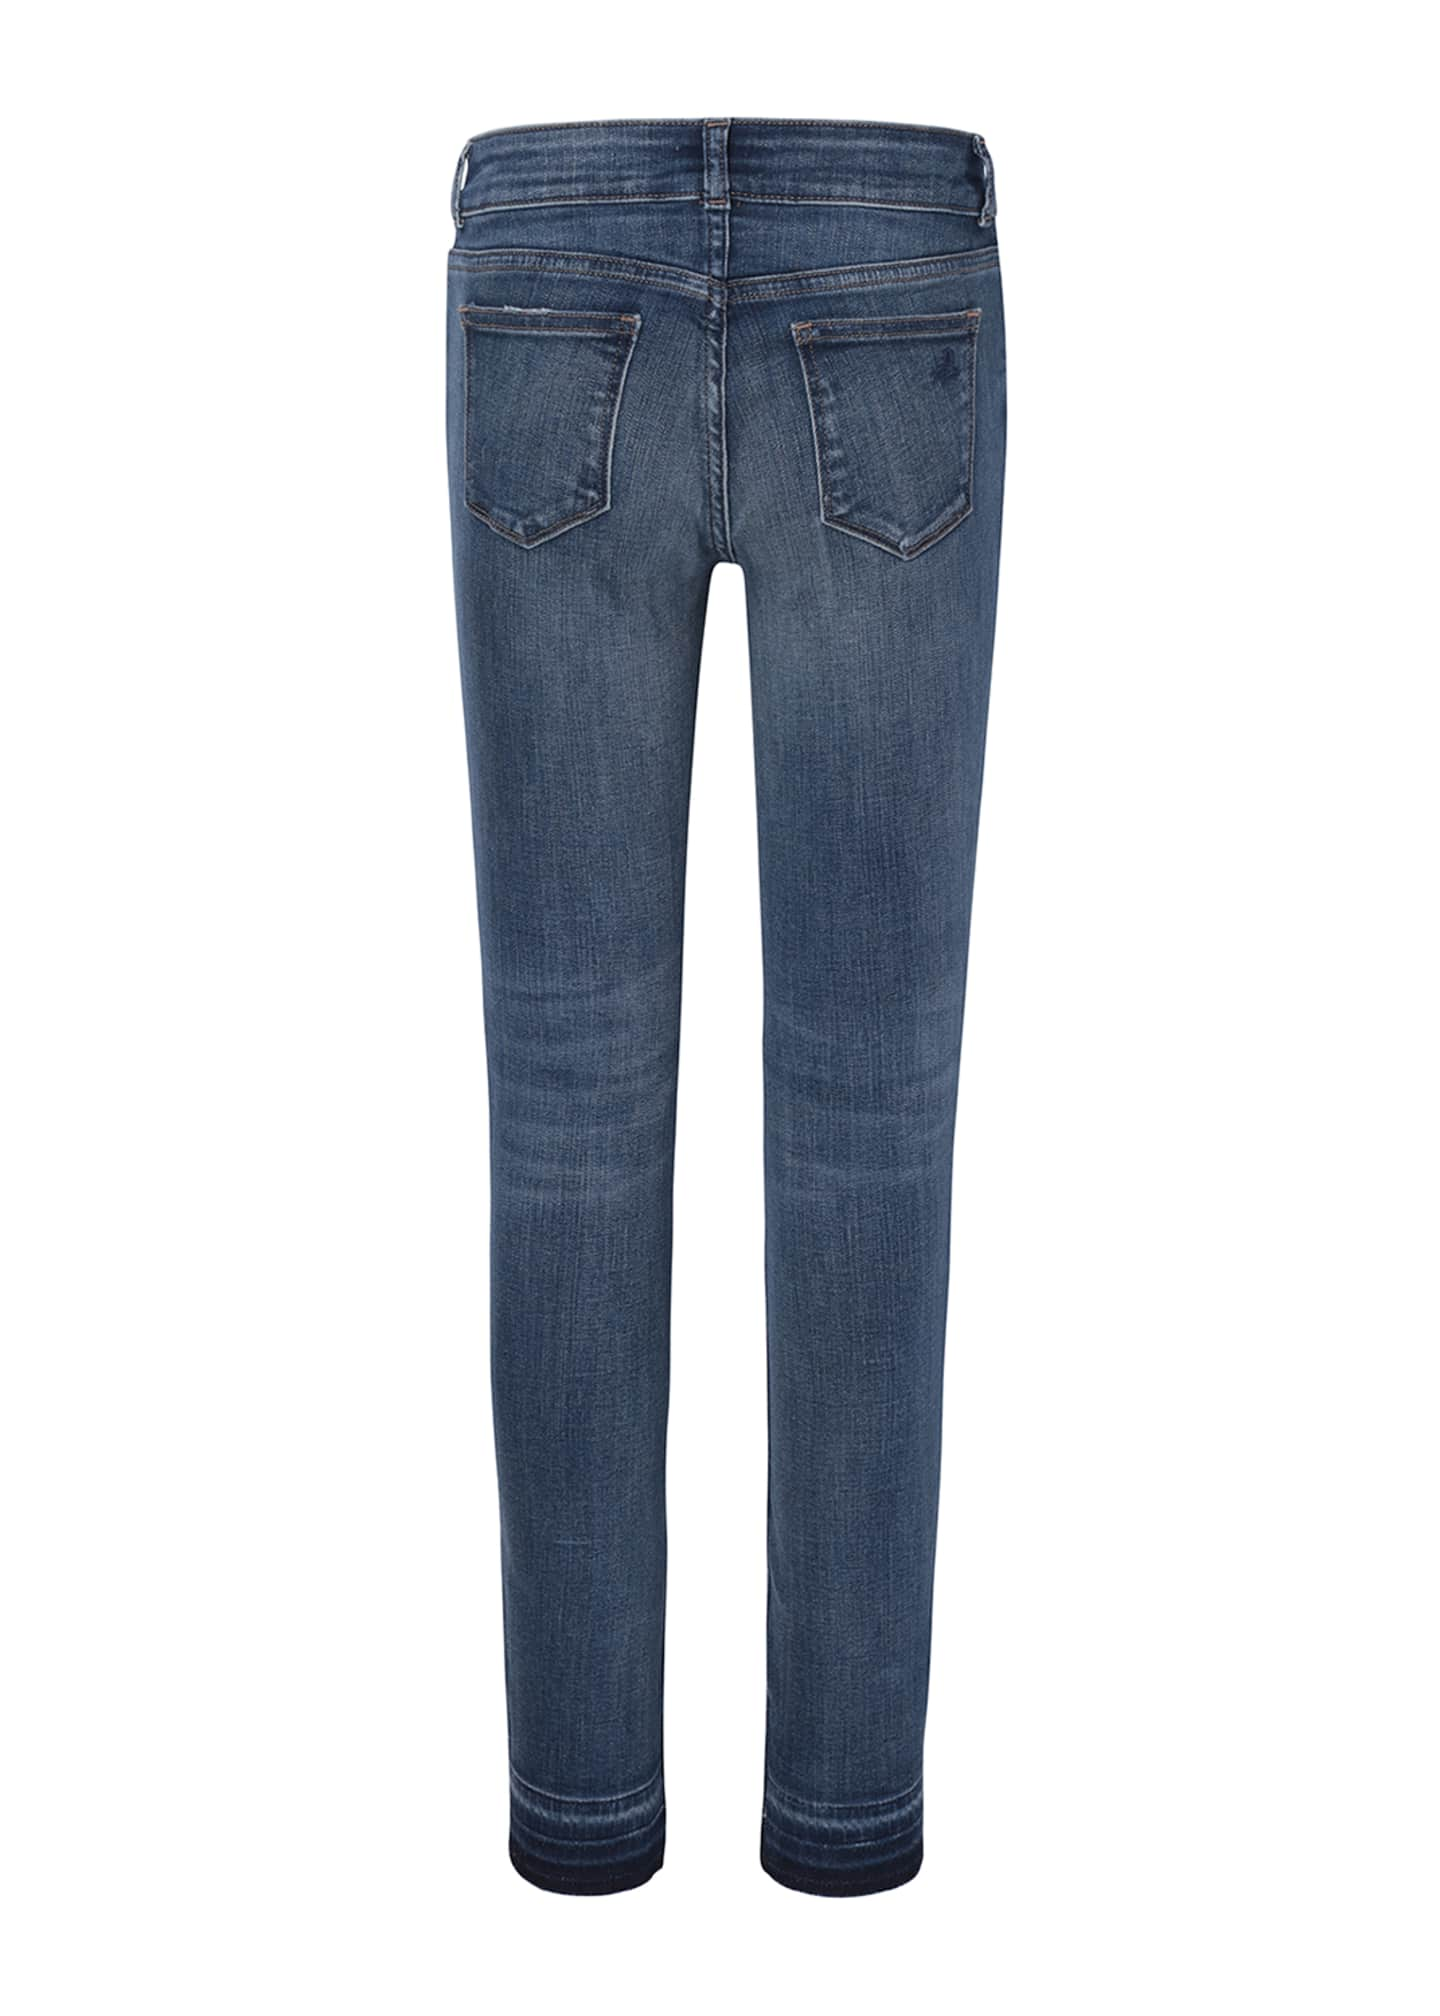 Image 2 of 2: Girls' Medium Wash Distressed Skinny Jeans w/ Double Cross Hem, Size 7-16